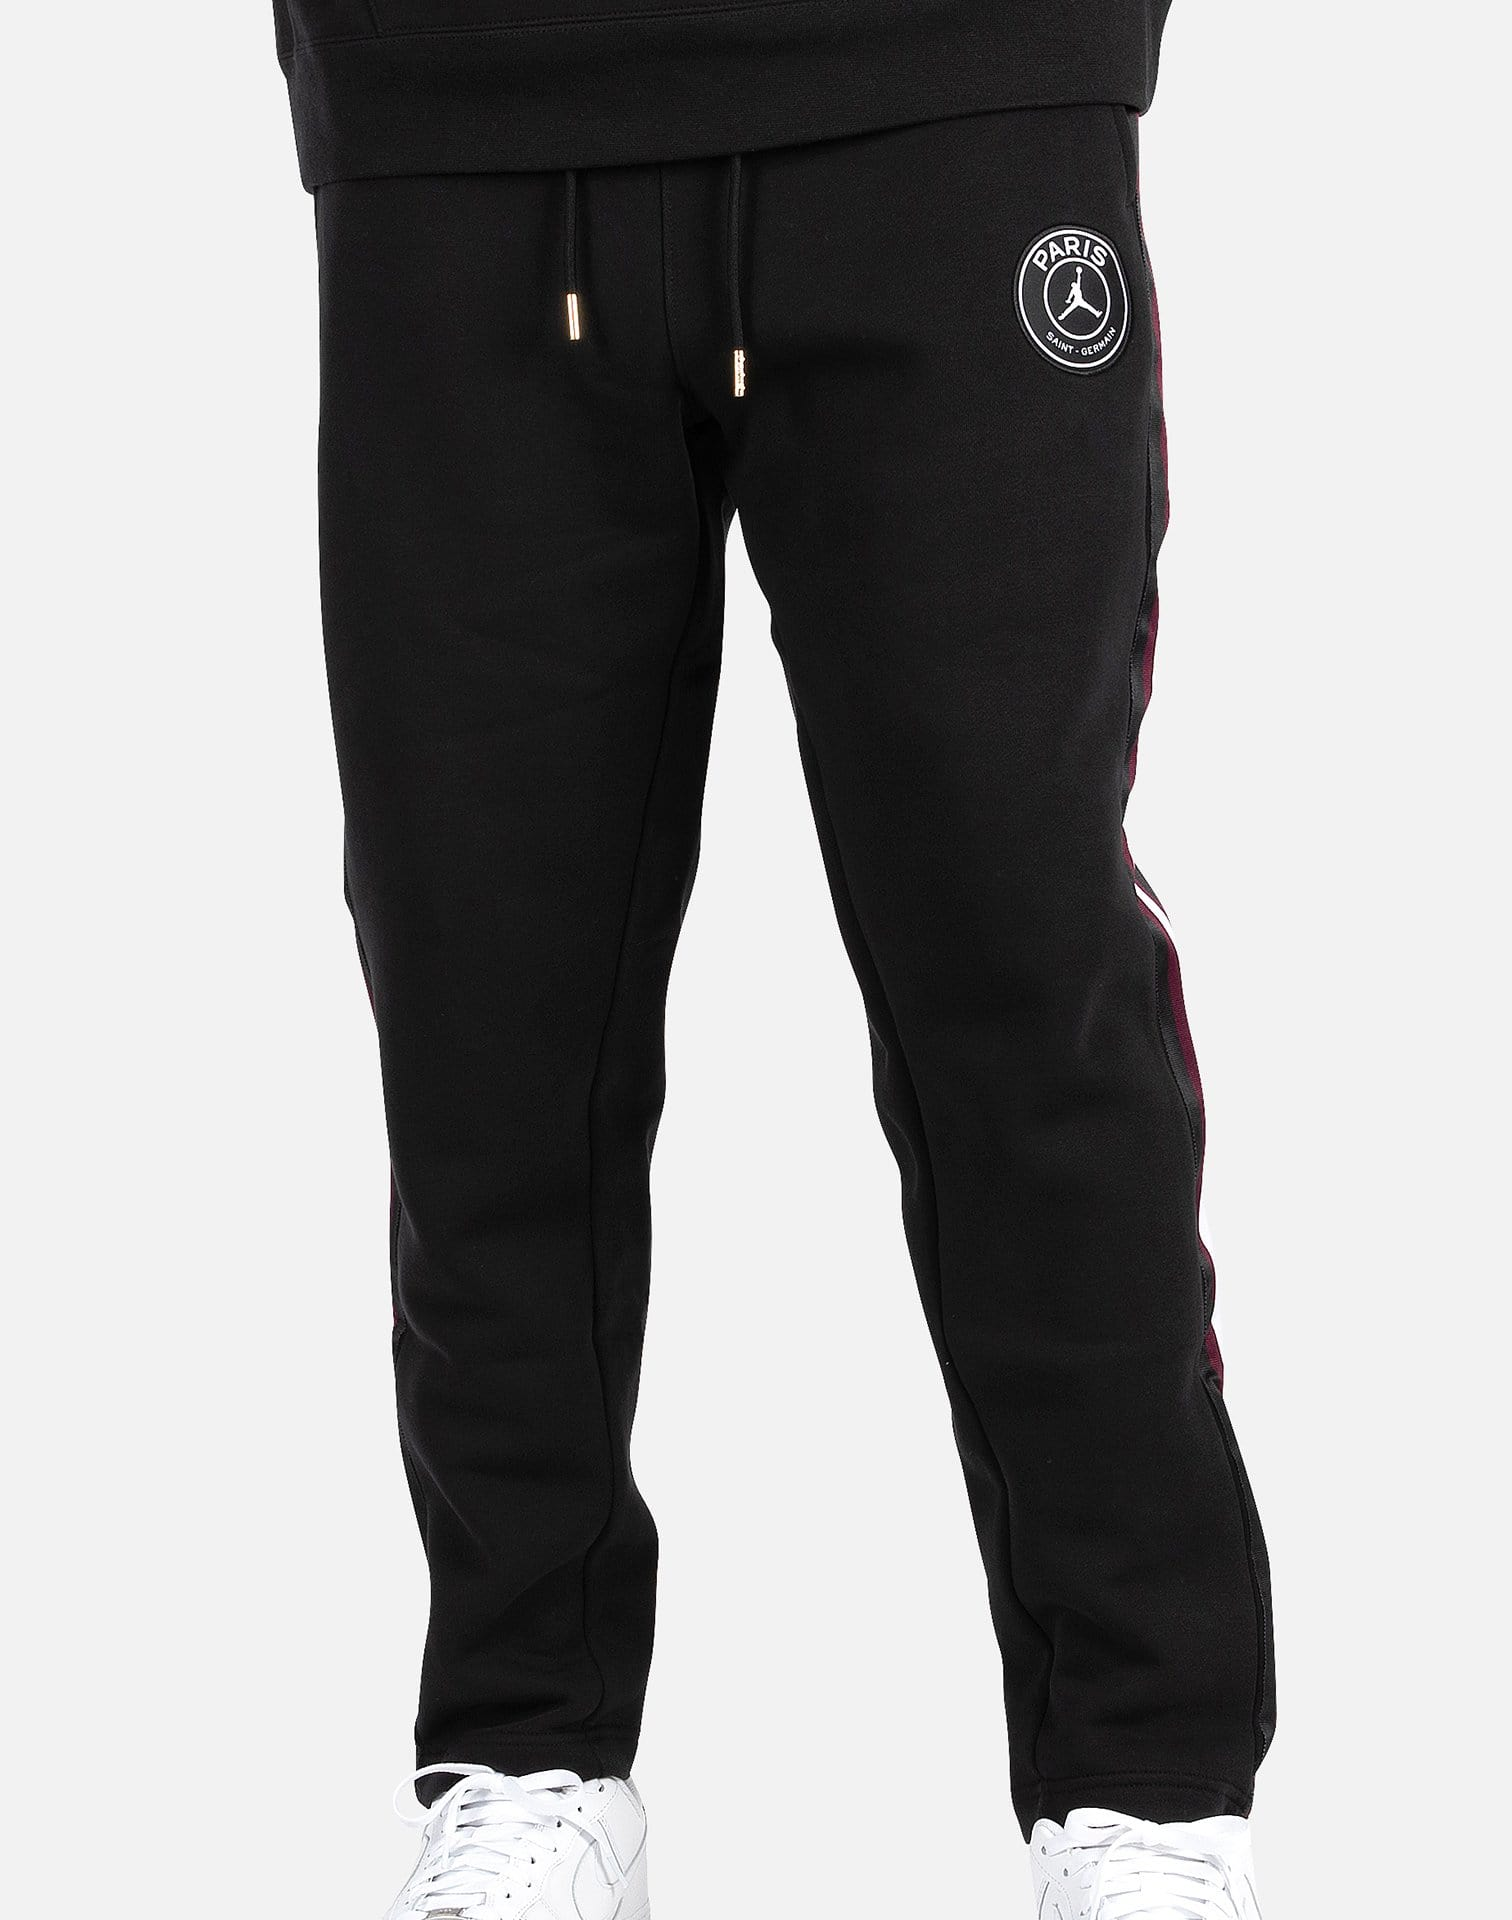 Jordan MJ PSG TAPED FLEECE PANTS